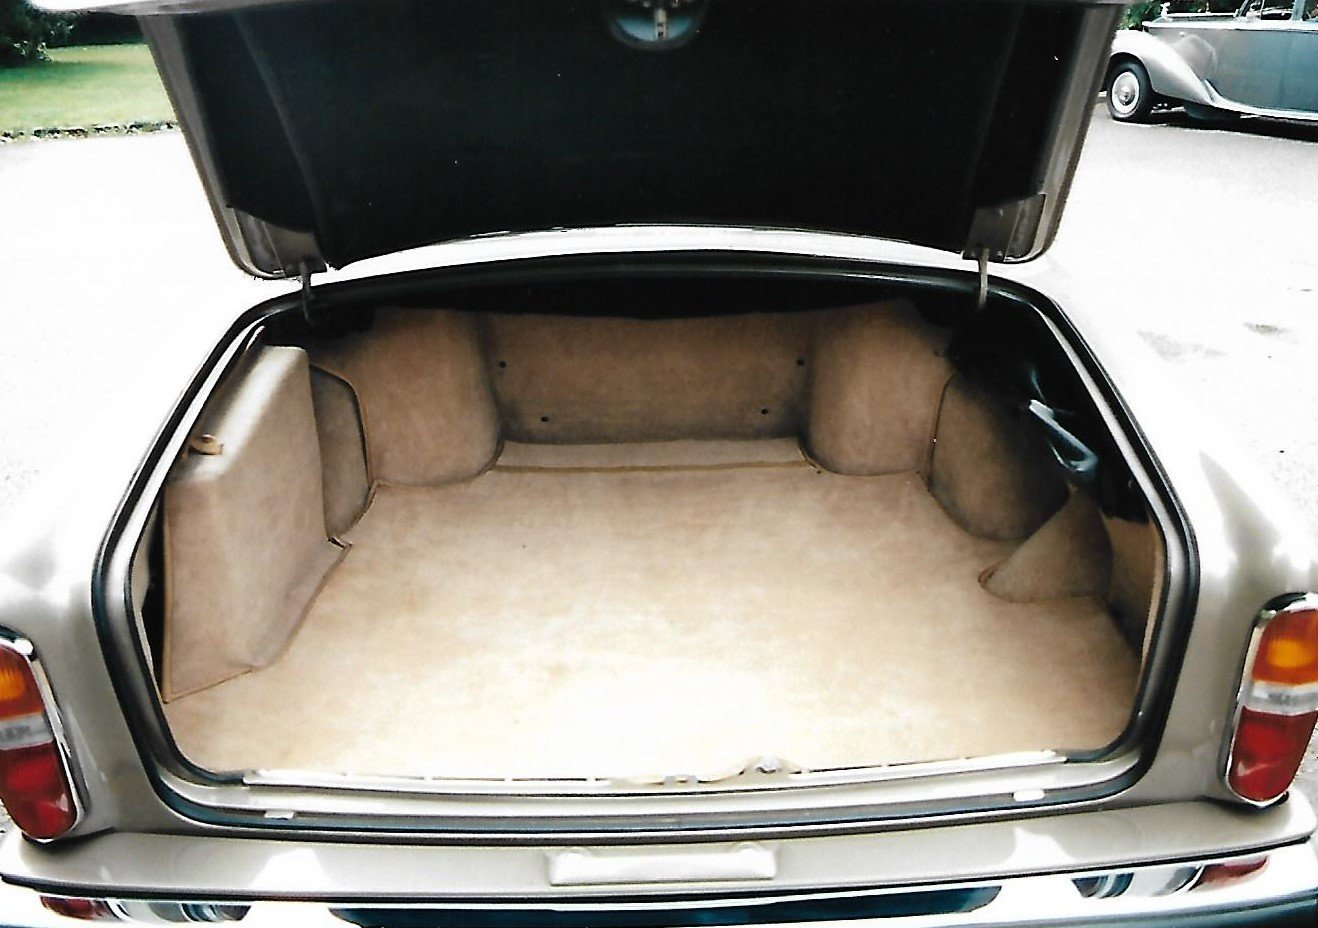 1978 Rolls royce silver shadow ii  For Sale (picture 4 of 5)